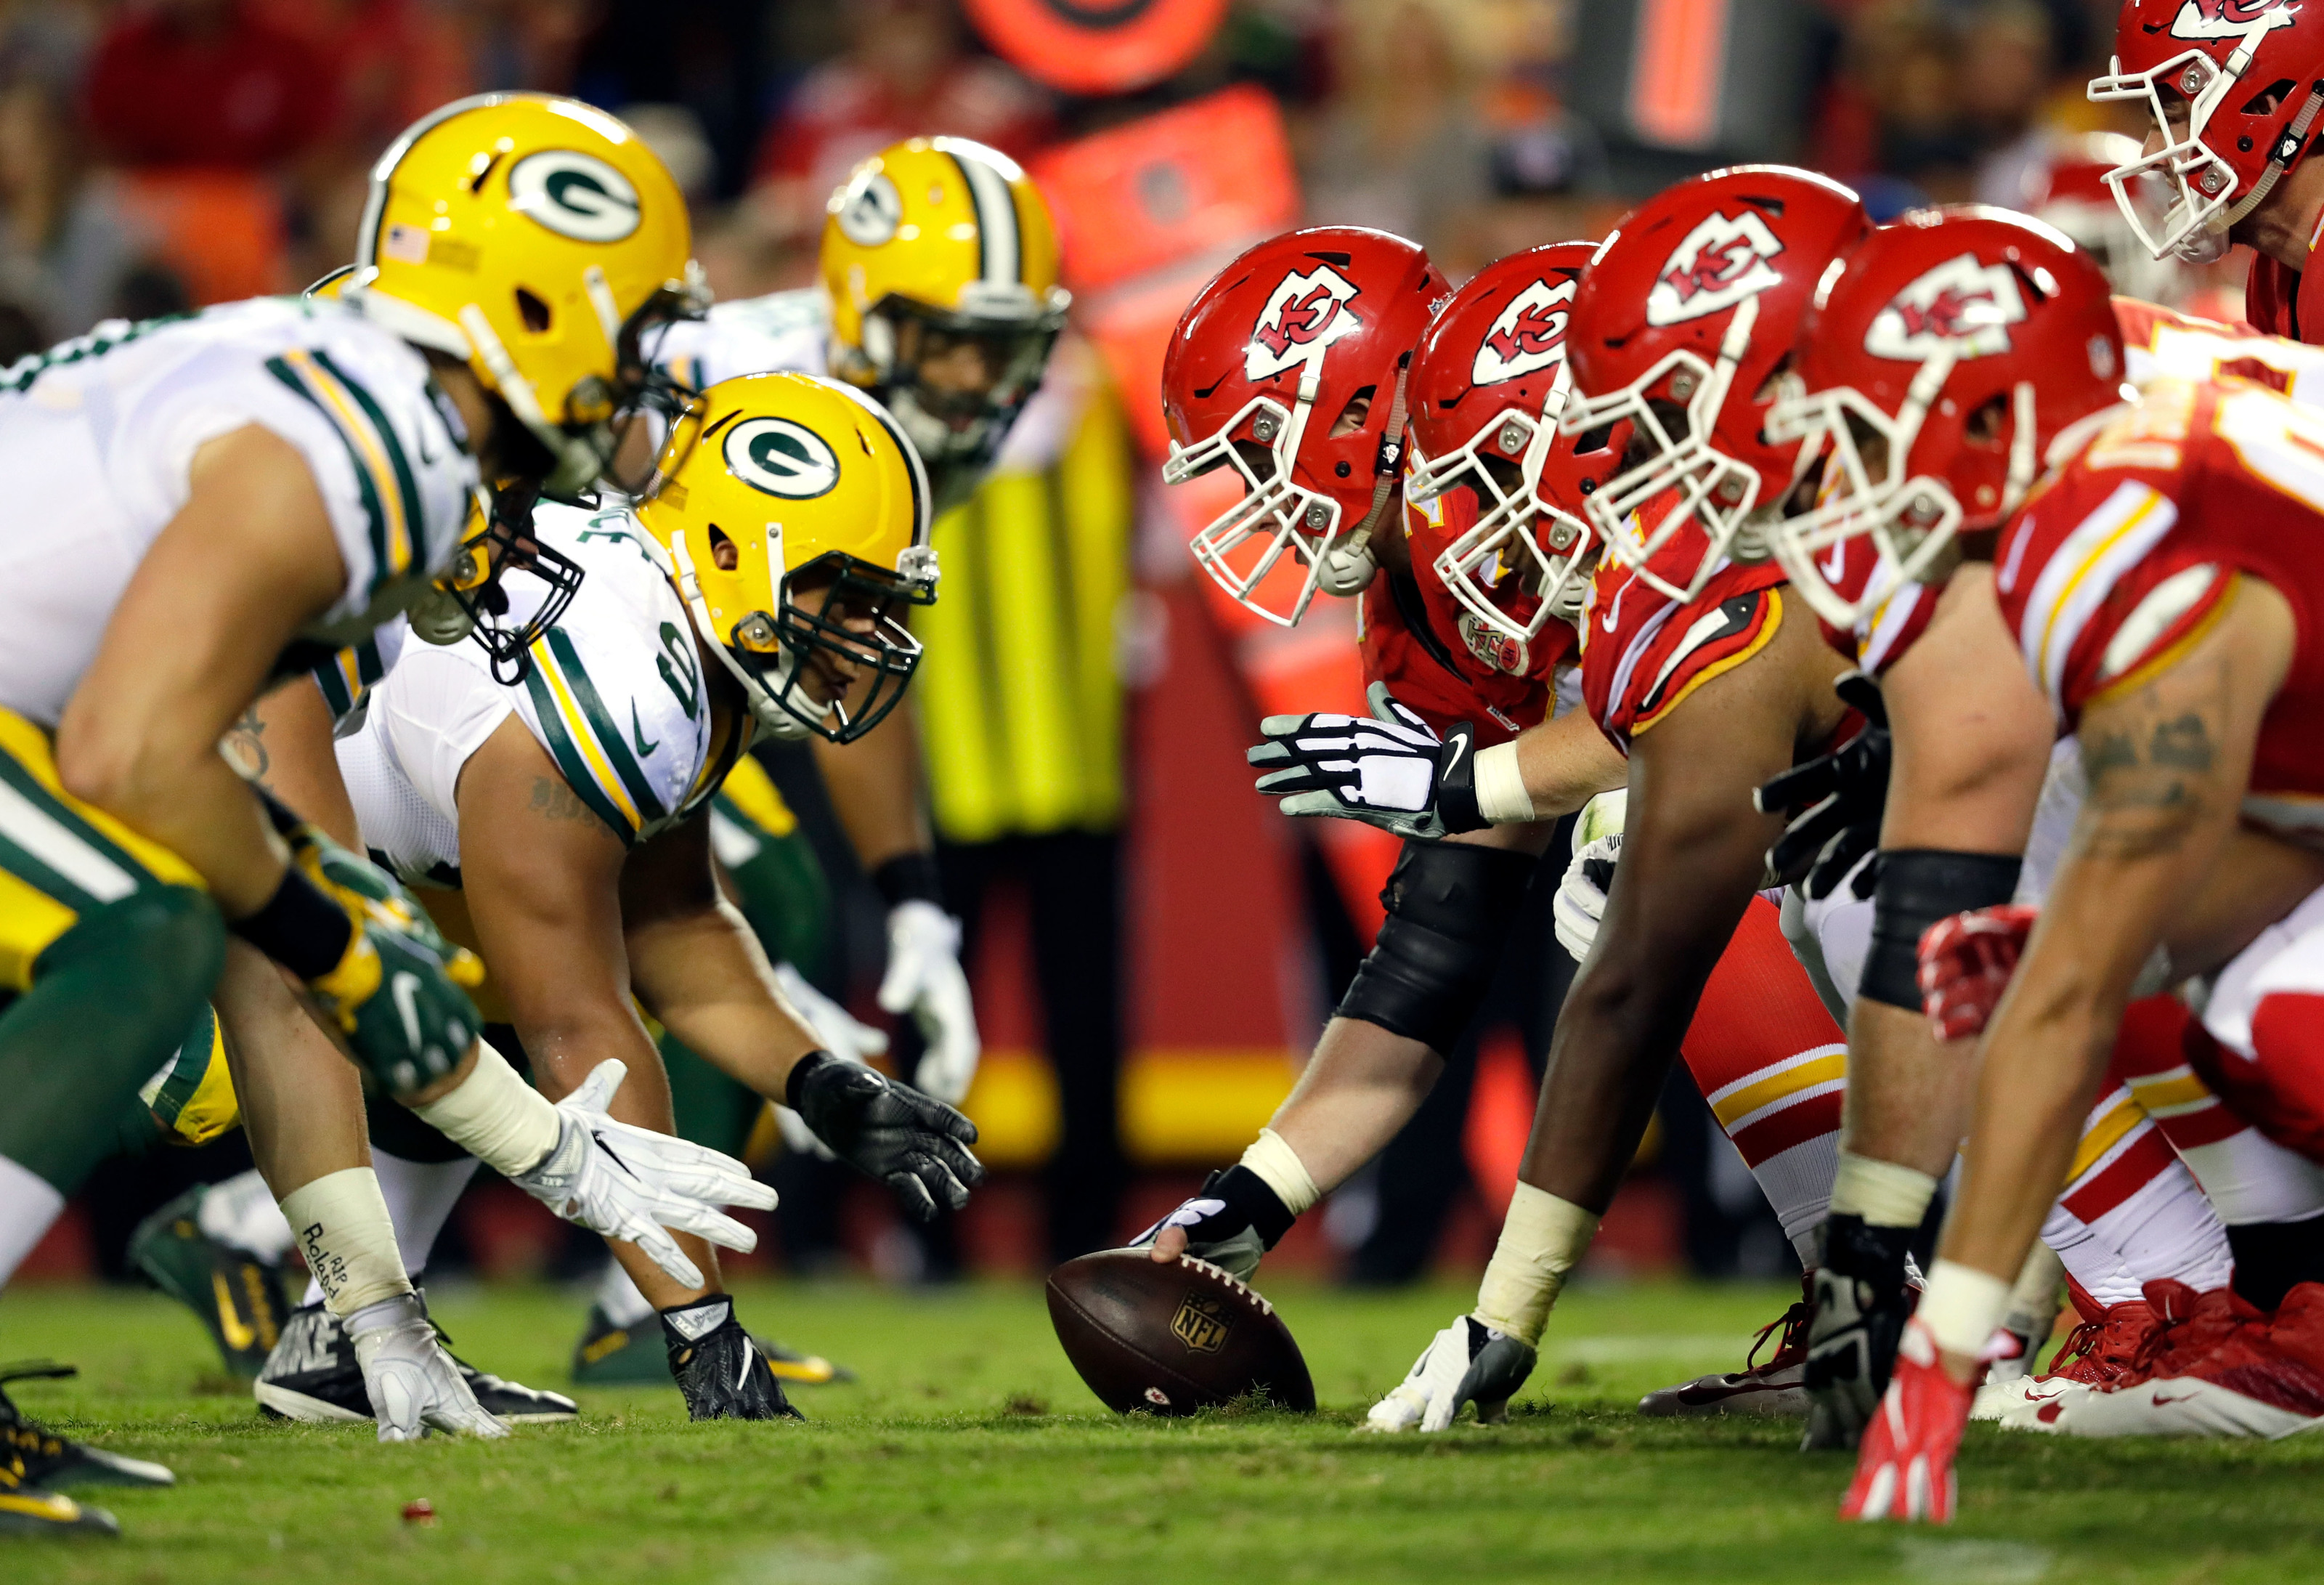 Packers vs. Chiefs: Three questions with Arrowhead Addict